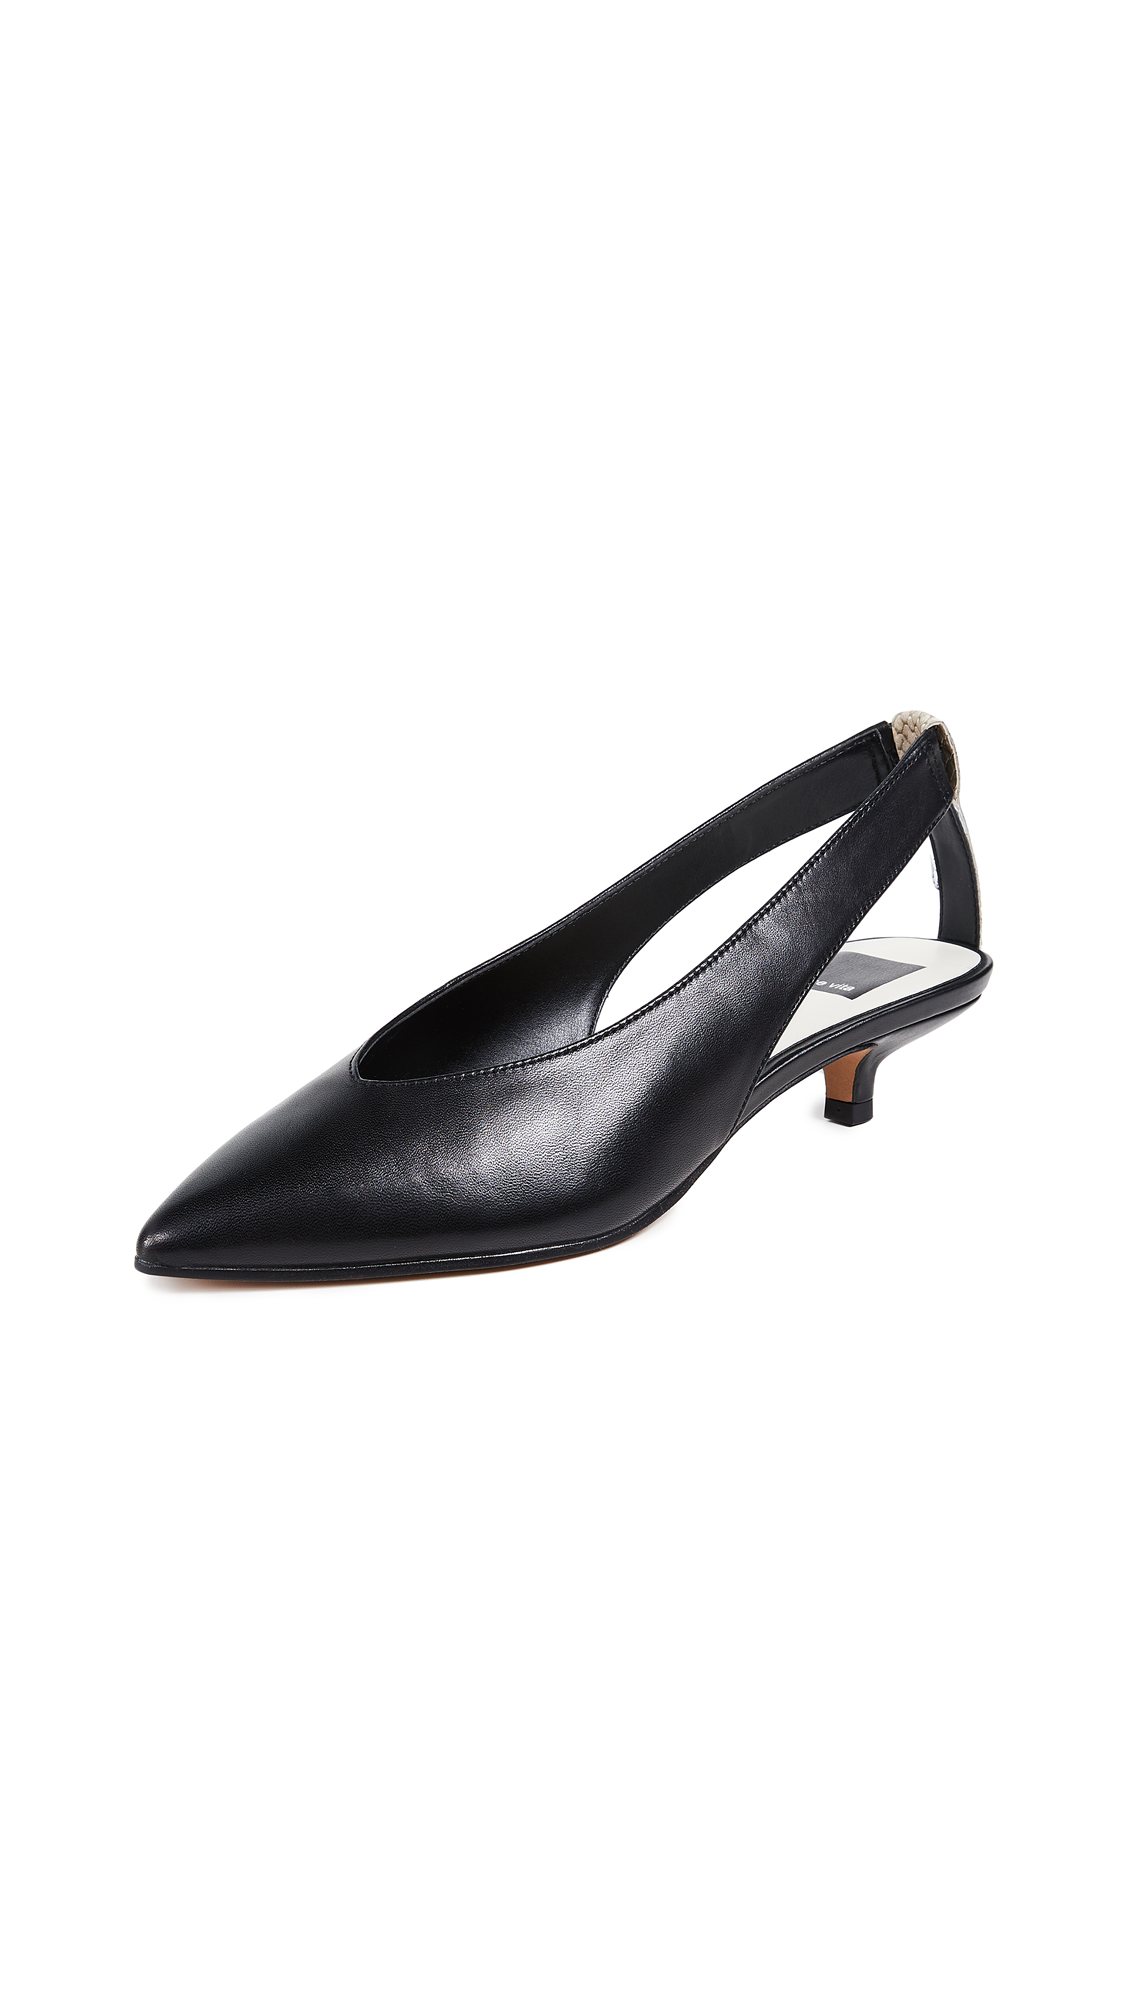 ORLY SLINGBACK PUMPS